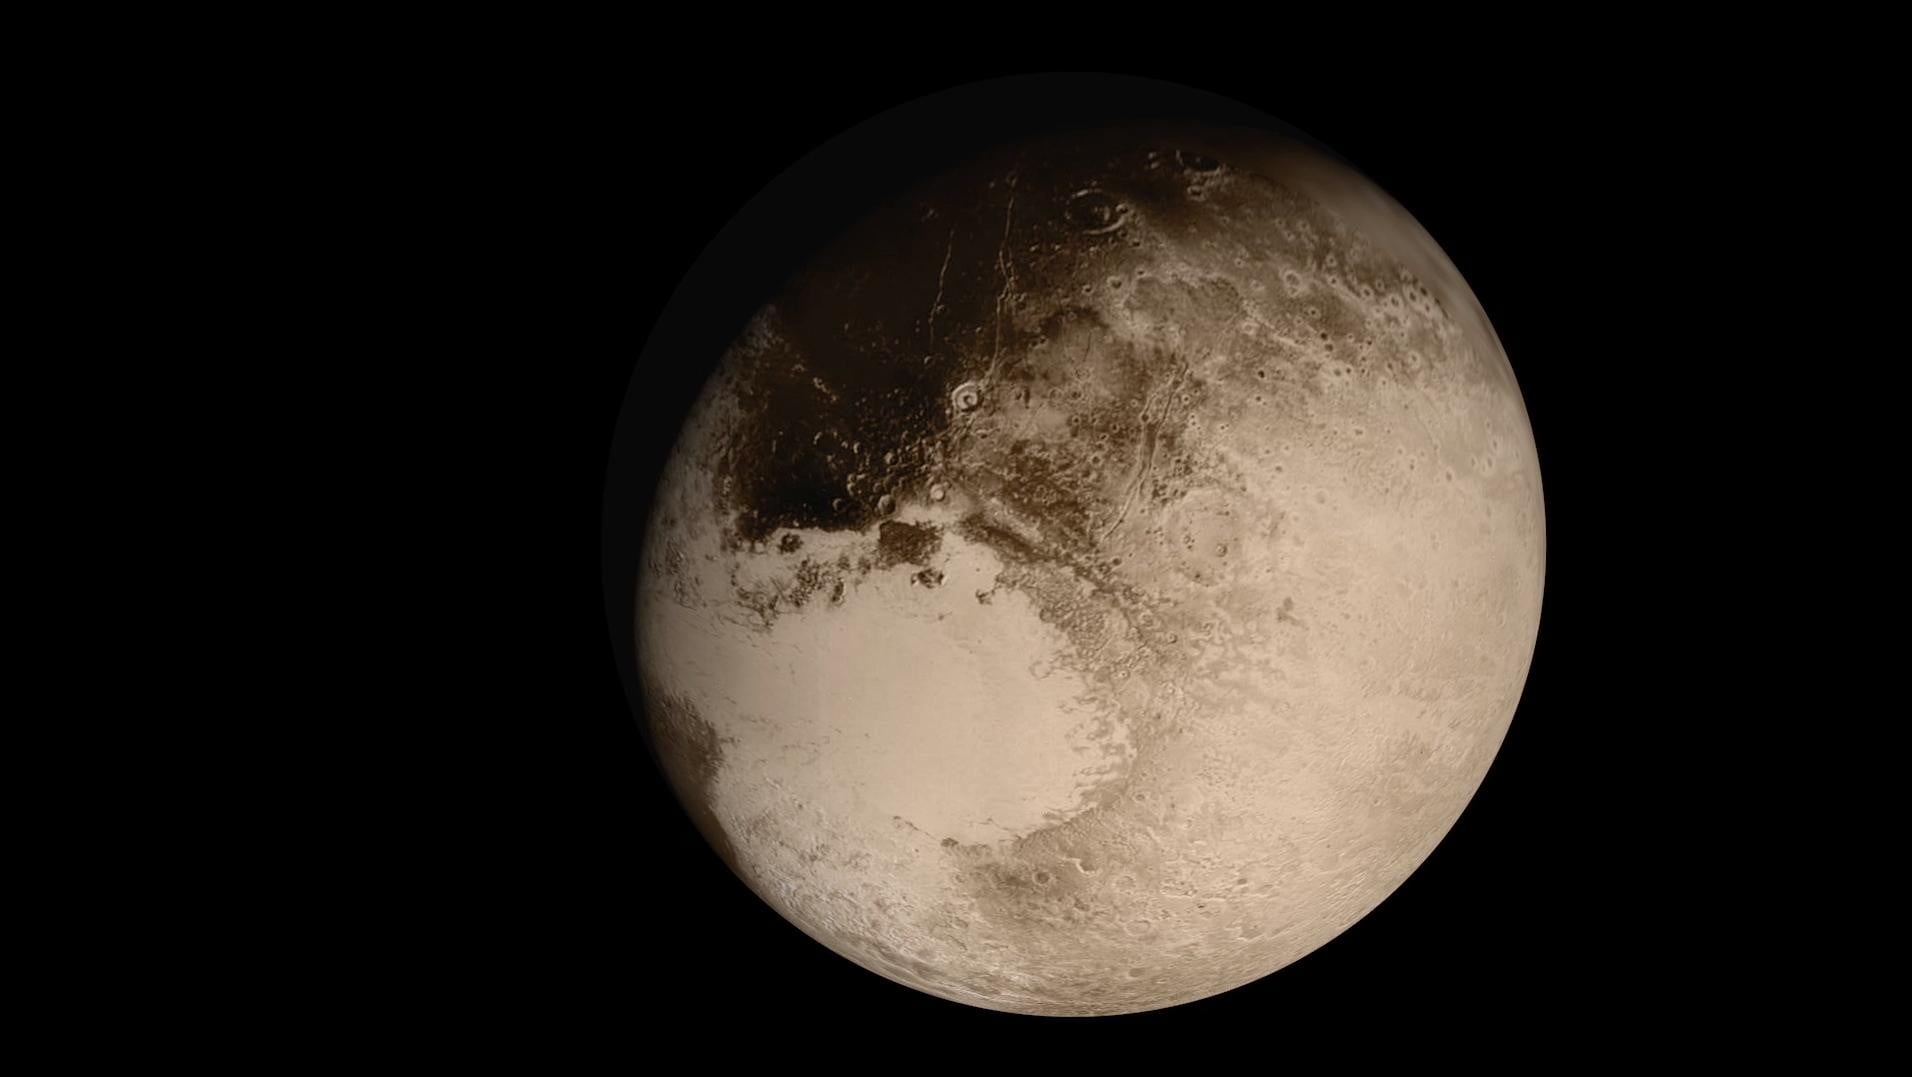 detailed pictures of pluto planet - photo #26